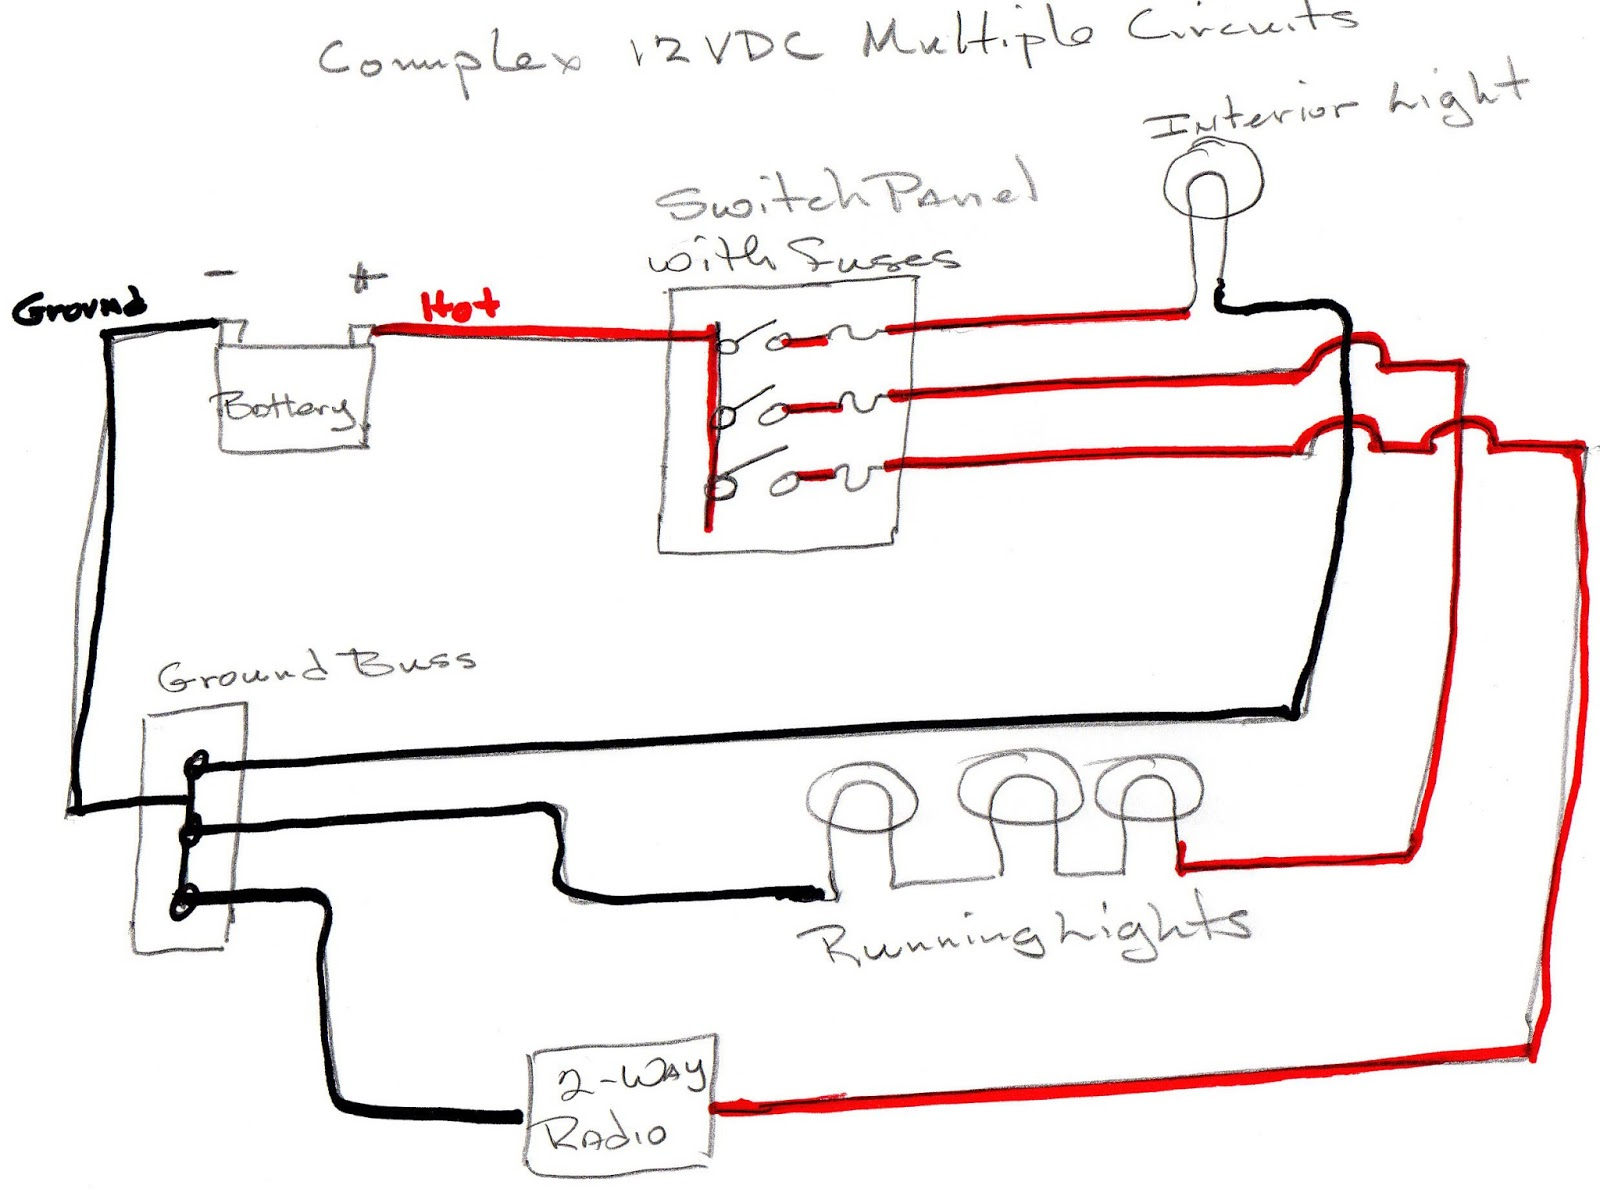 hight resolution of so here we have three 12vdc circuits made up of three red wires and three black wires when extra circuits are added a switch panel with switches and